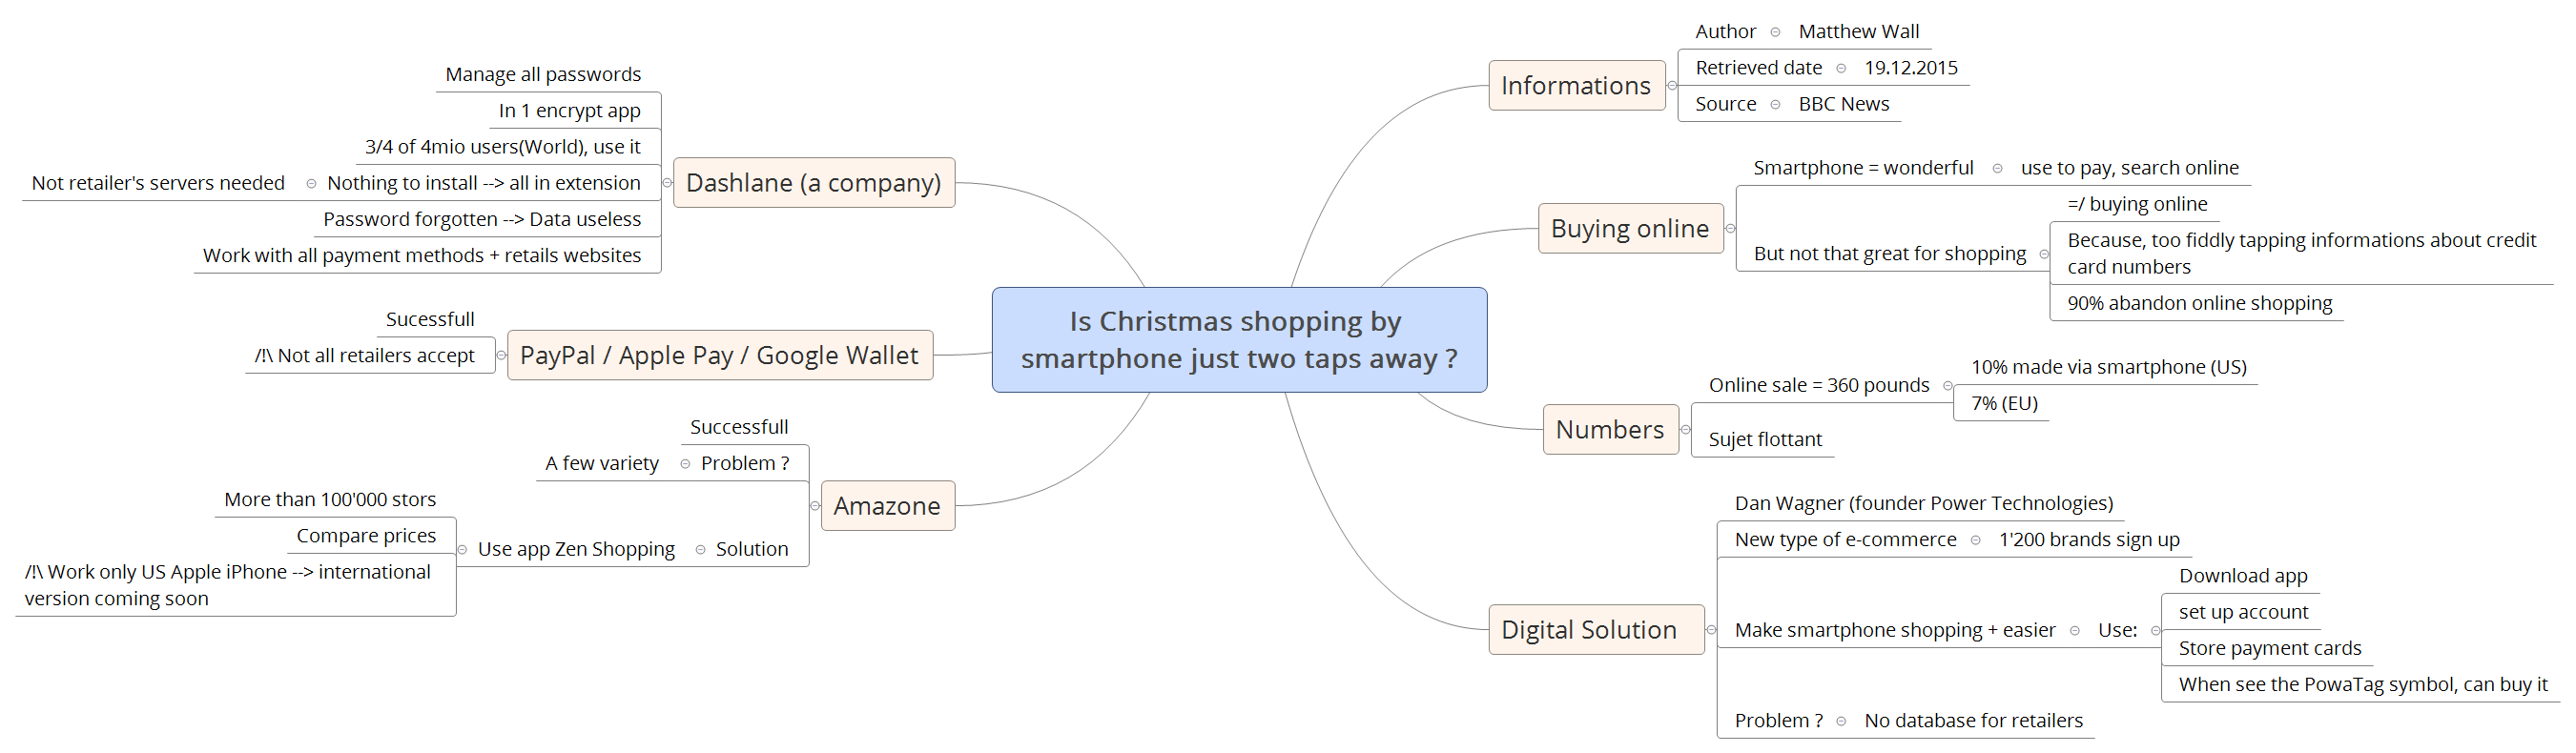 66aa3a681 Thumbnail of mind map · Is Christmas shopping by smartphone just two taps  away